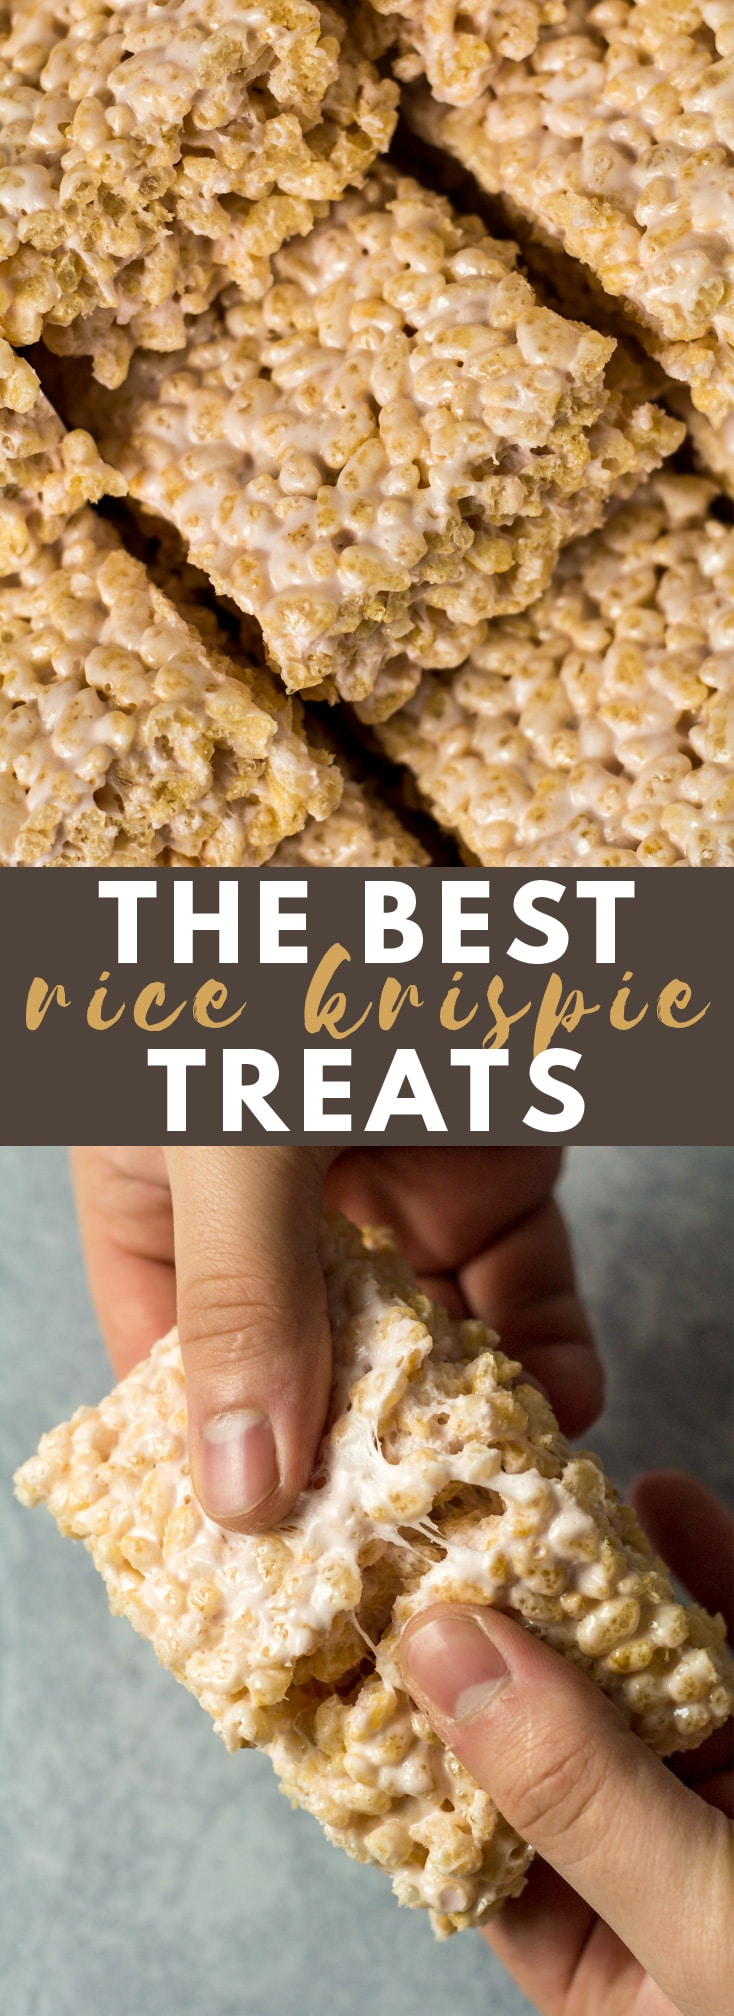 The BEST Rice Krispie Treats - Deliciously thick, chewy, ooey gooey bars that are loaded with Rice Krispies and melted marshmallow. These Rice Krispie squares are seriously good!